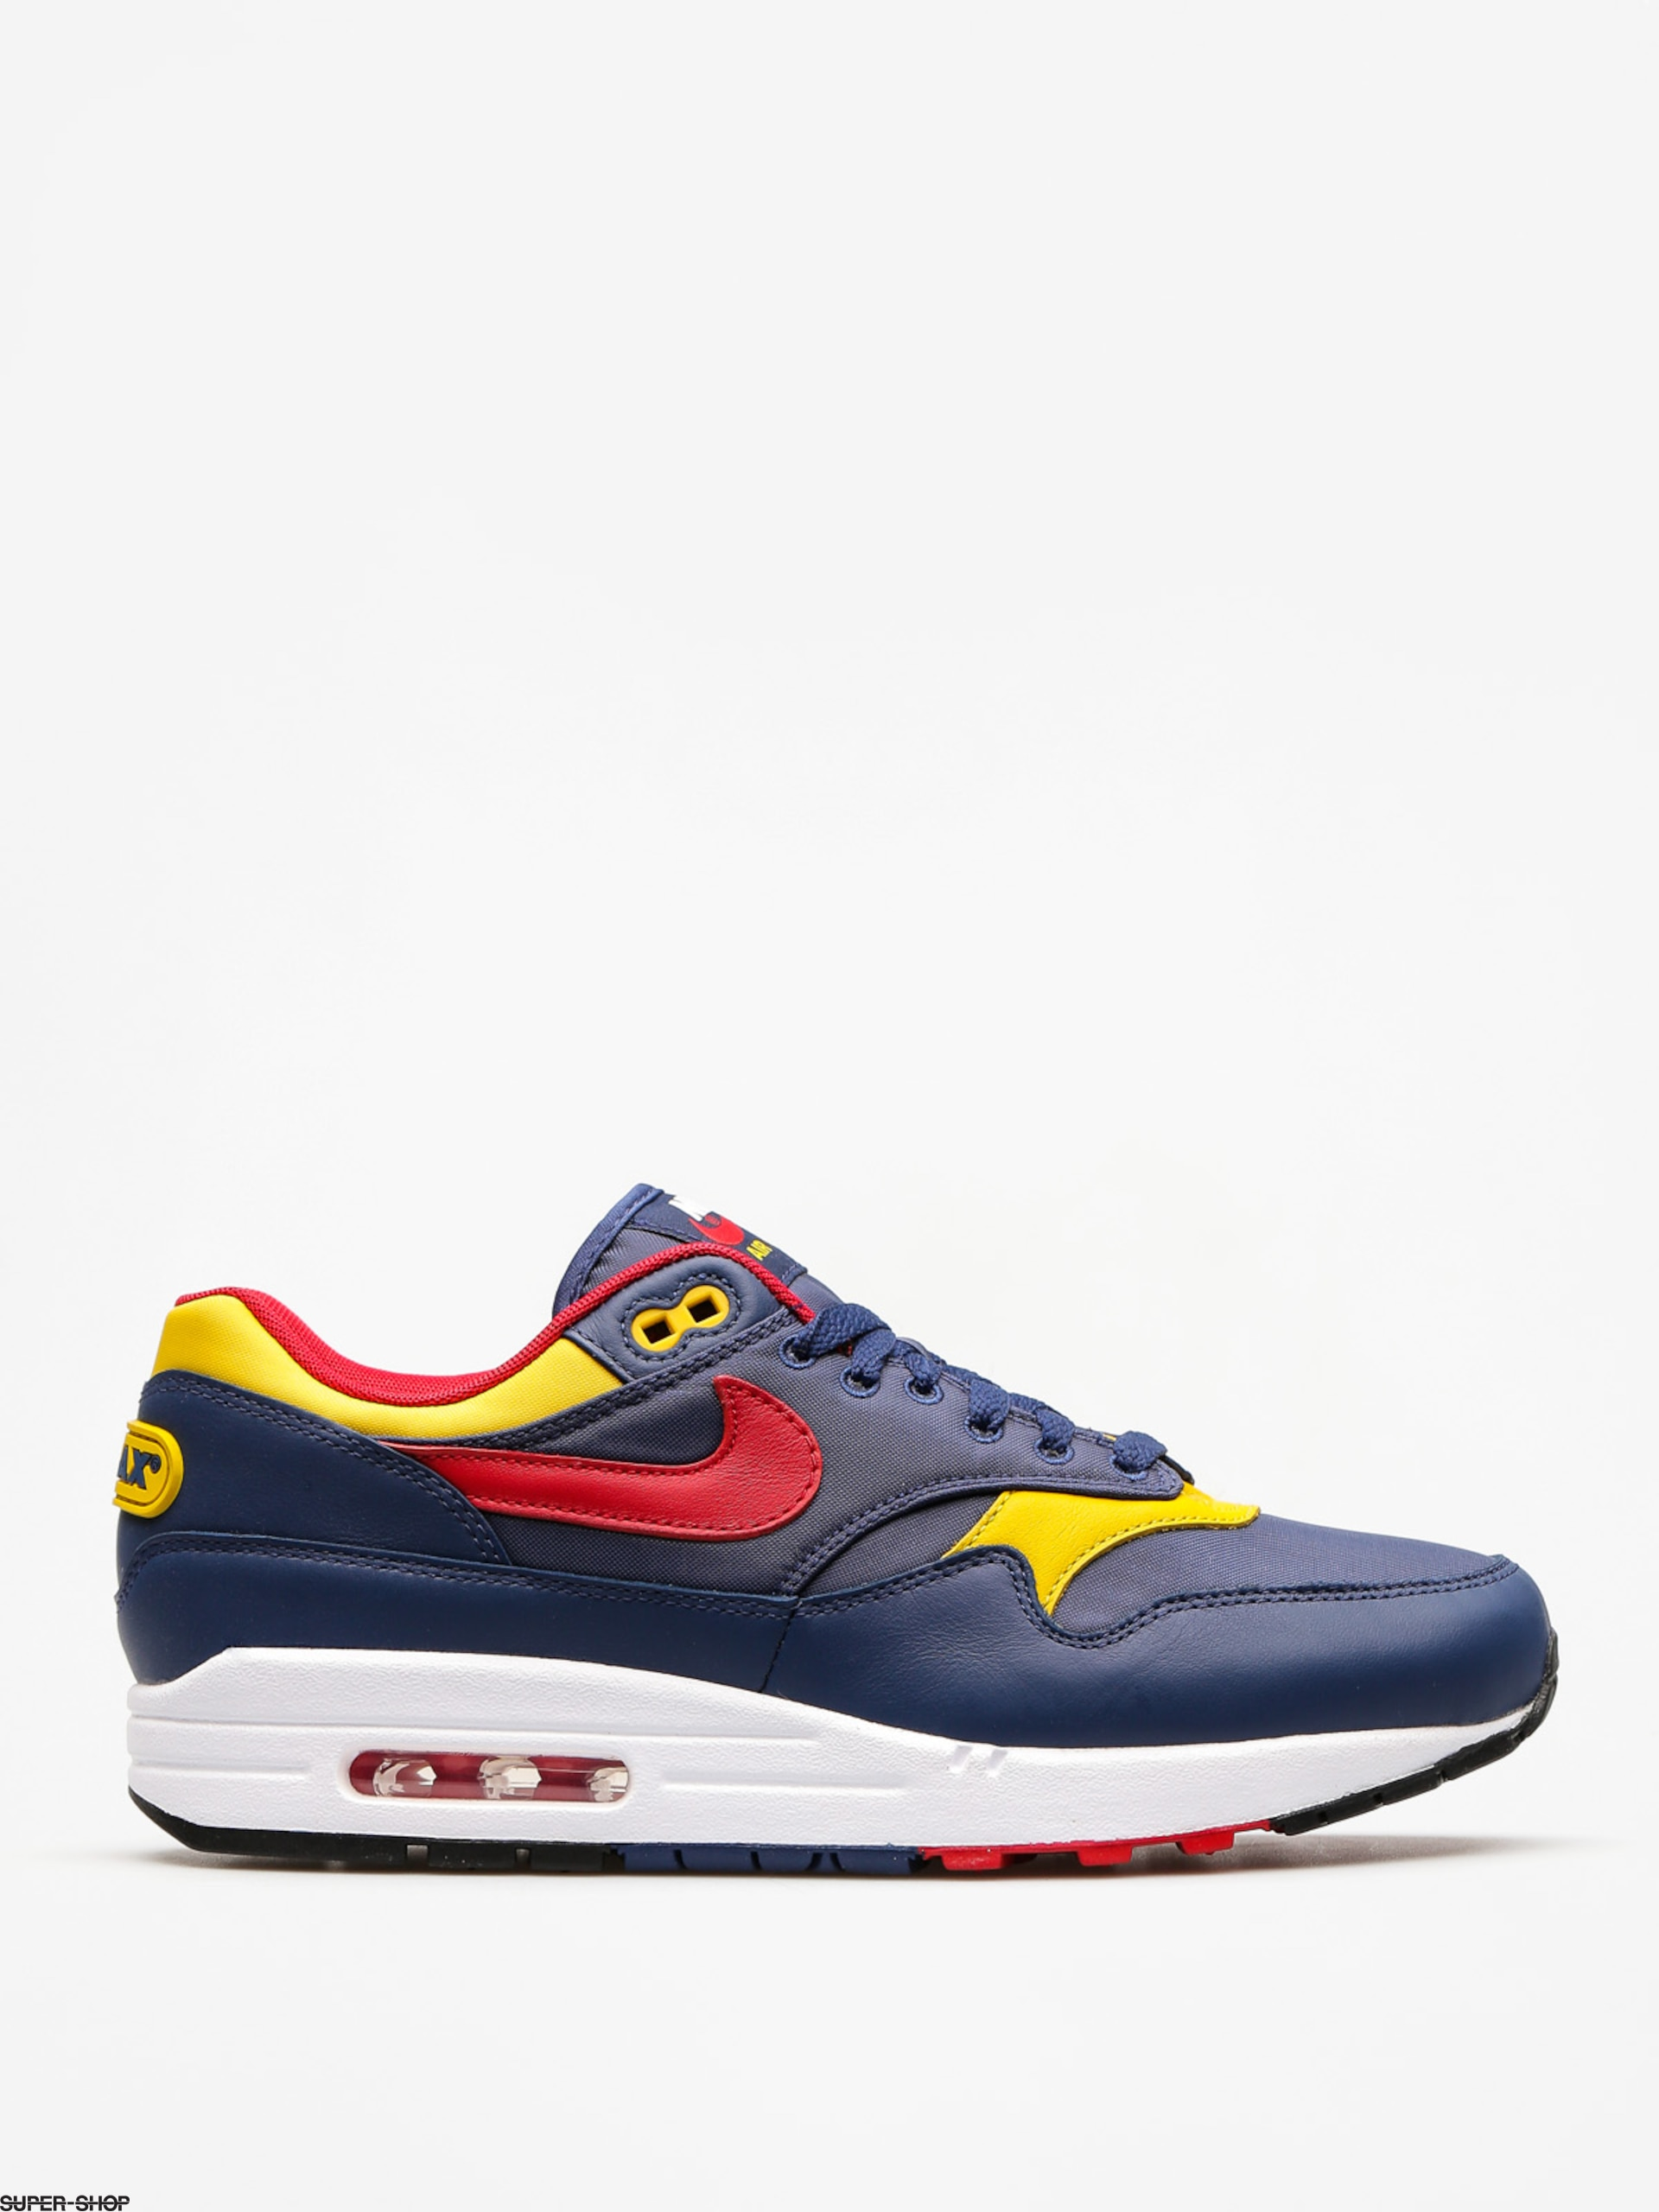 Nike Schuhe Air Max 1 Premium (navy/gym red vivid sulfur white)